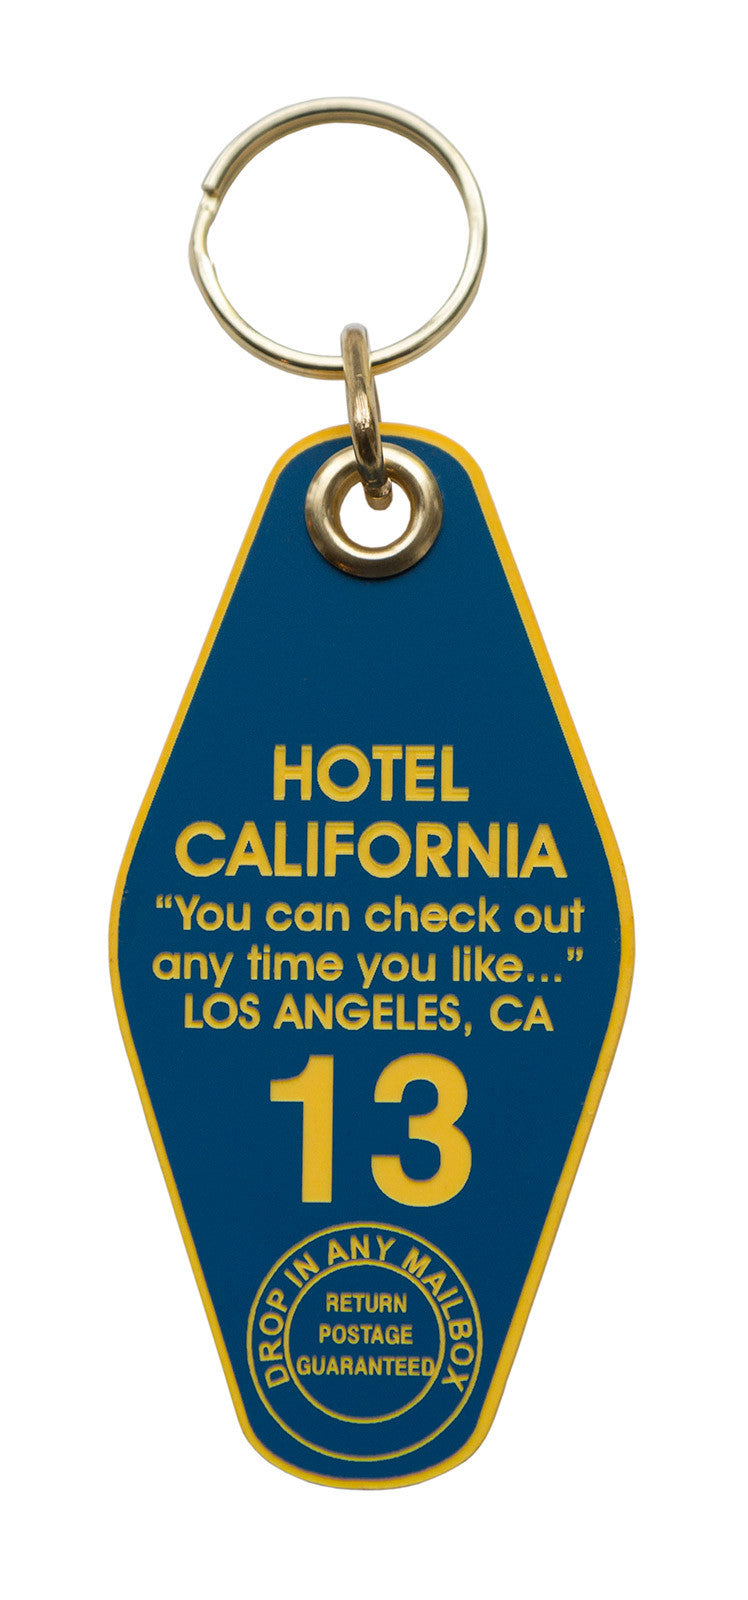 Hotel California Motel Style Keychain Tag Blue And Yellow By Well Done Goods